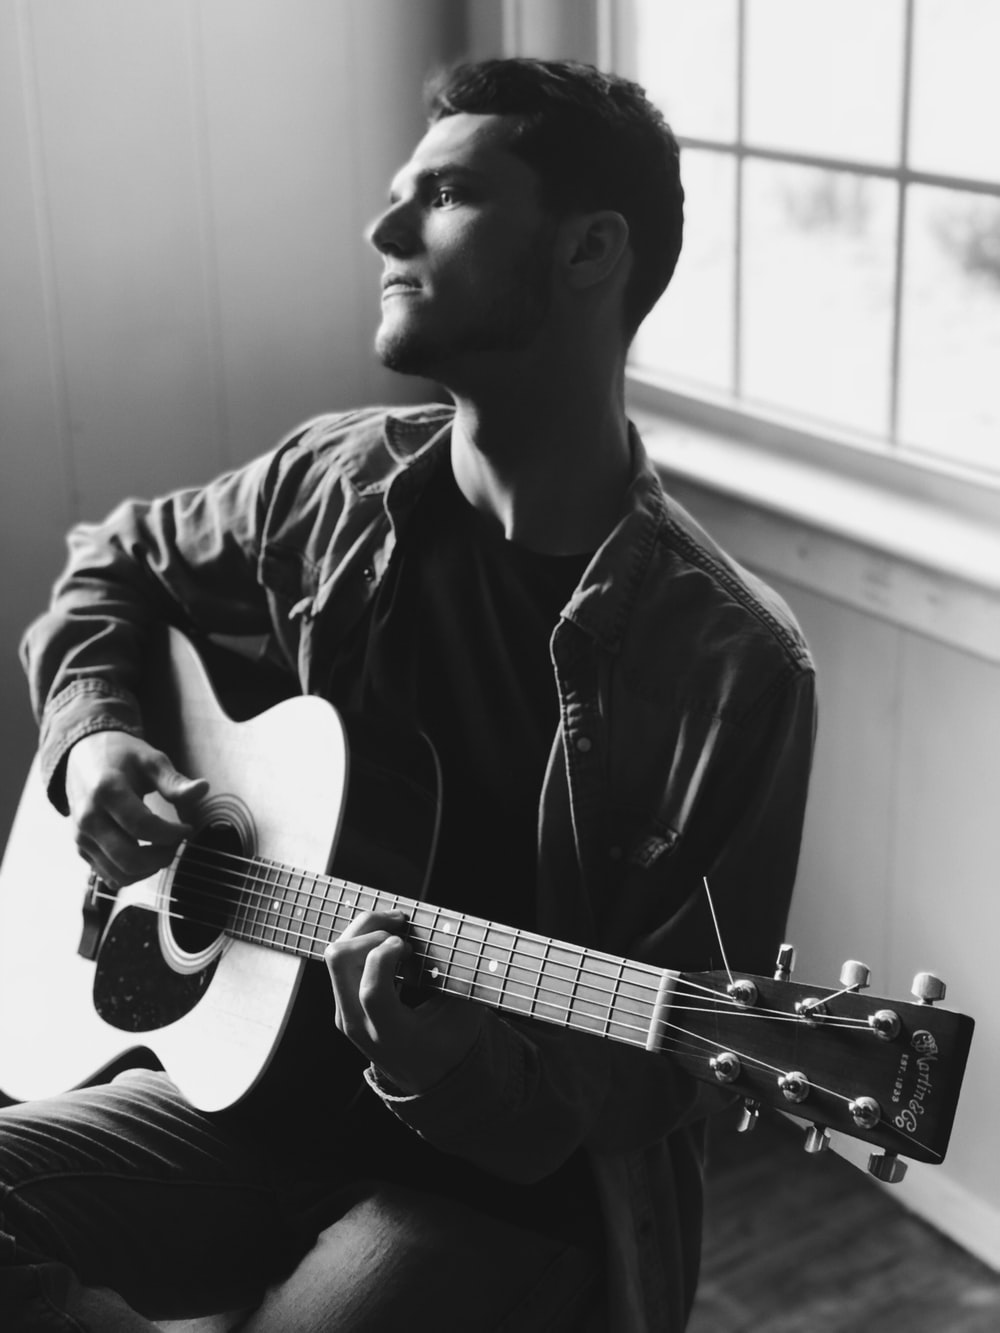 grayscale photography of man playing acoustic guitar